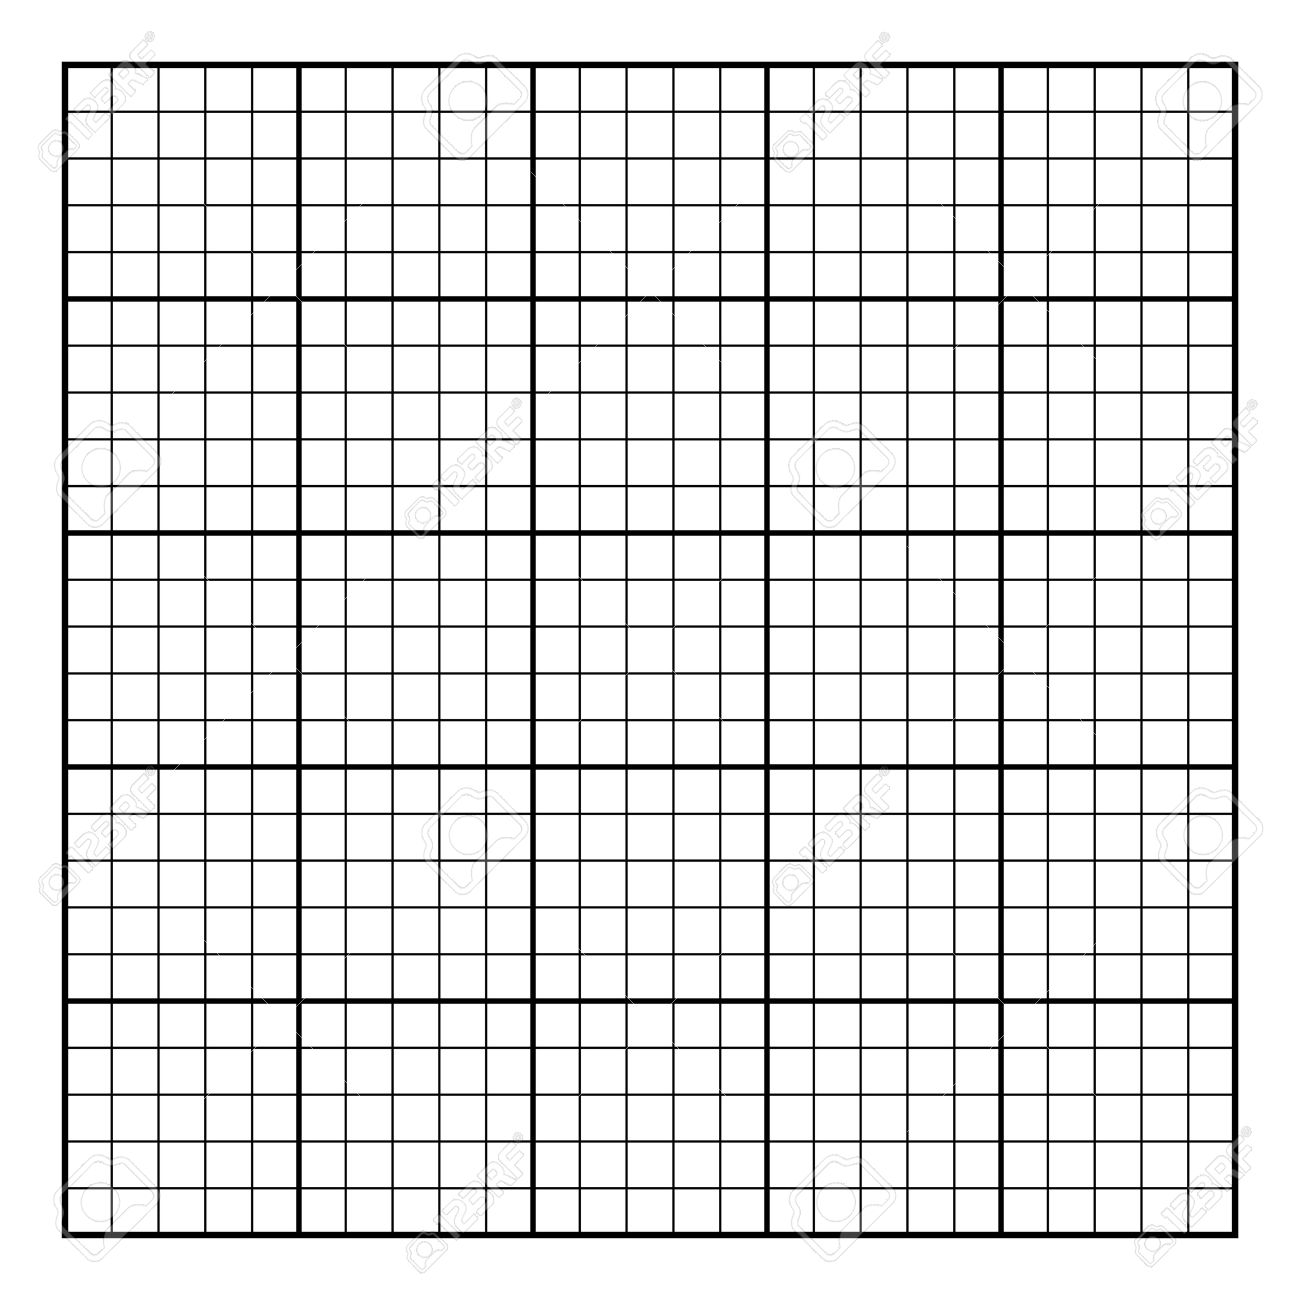 18981872 graph paper illustrator background eps10 stock vectorjpg